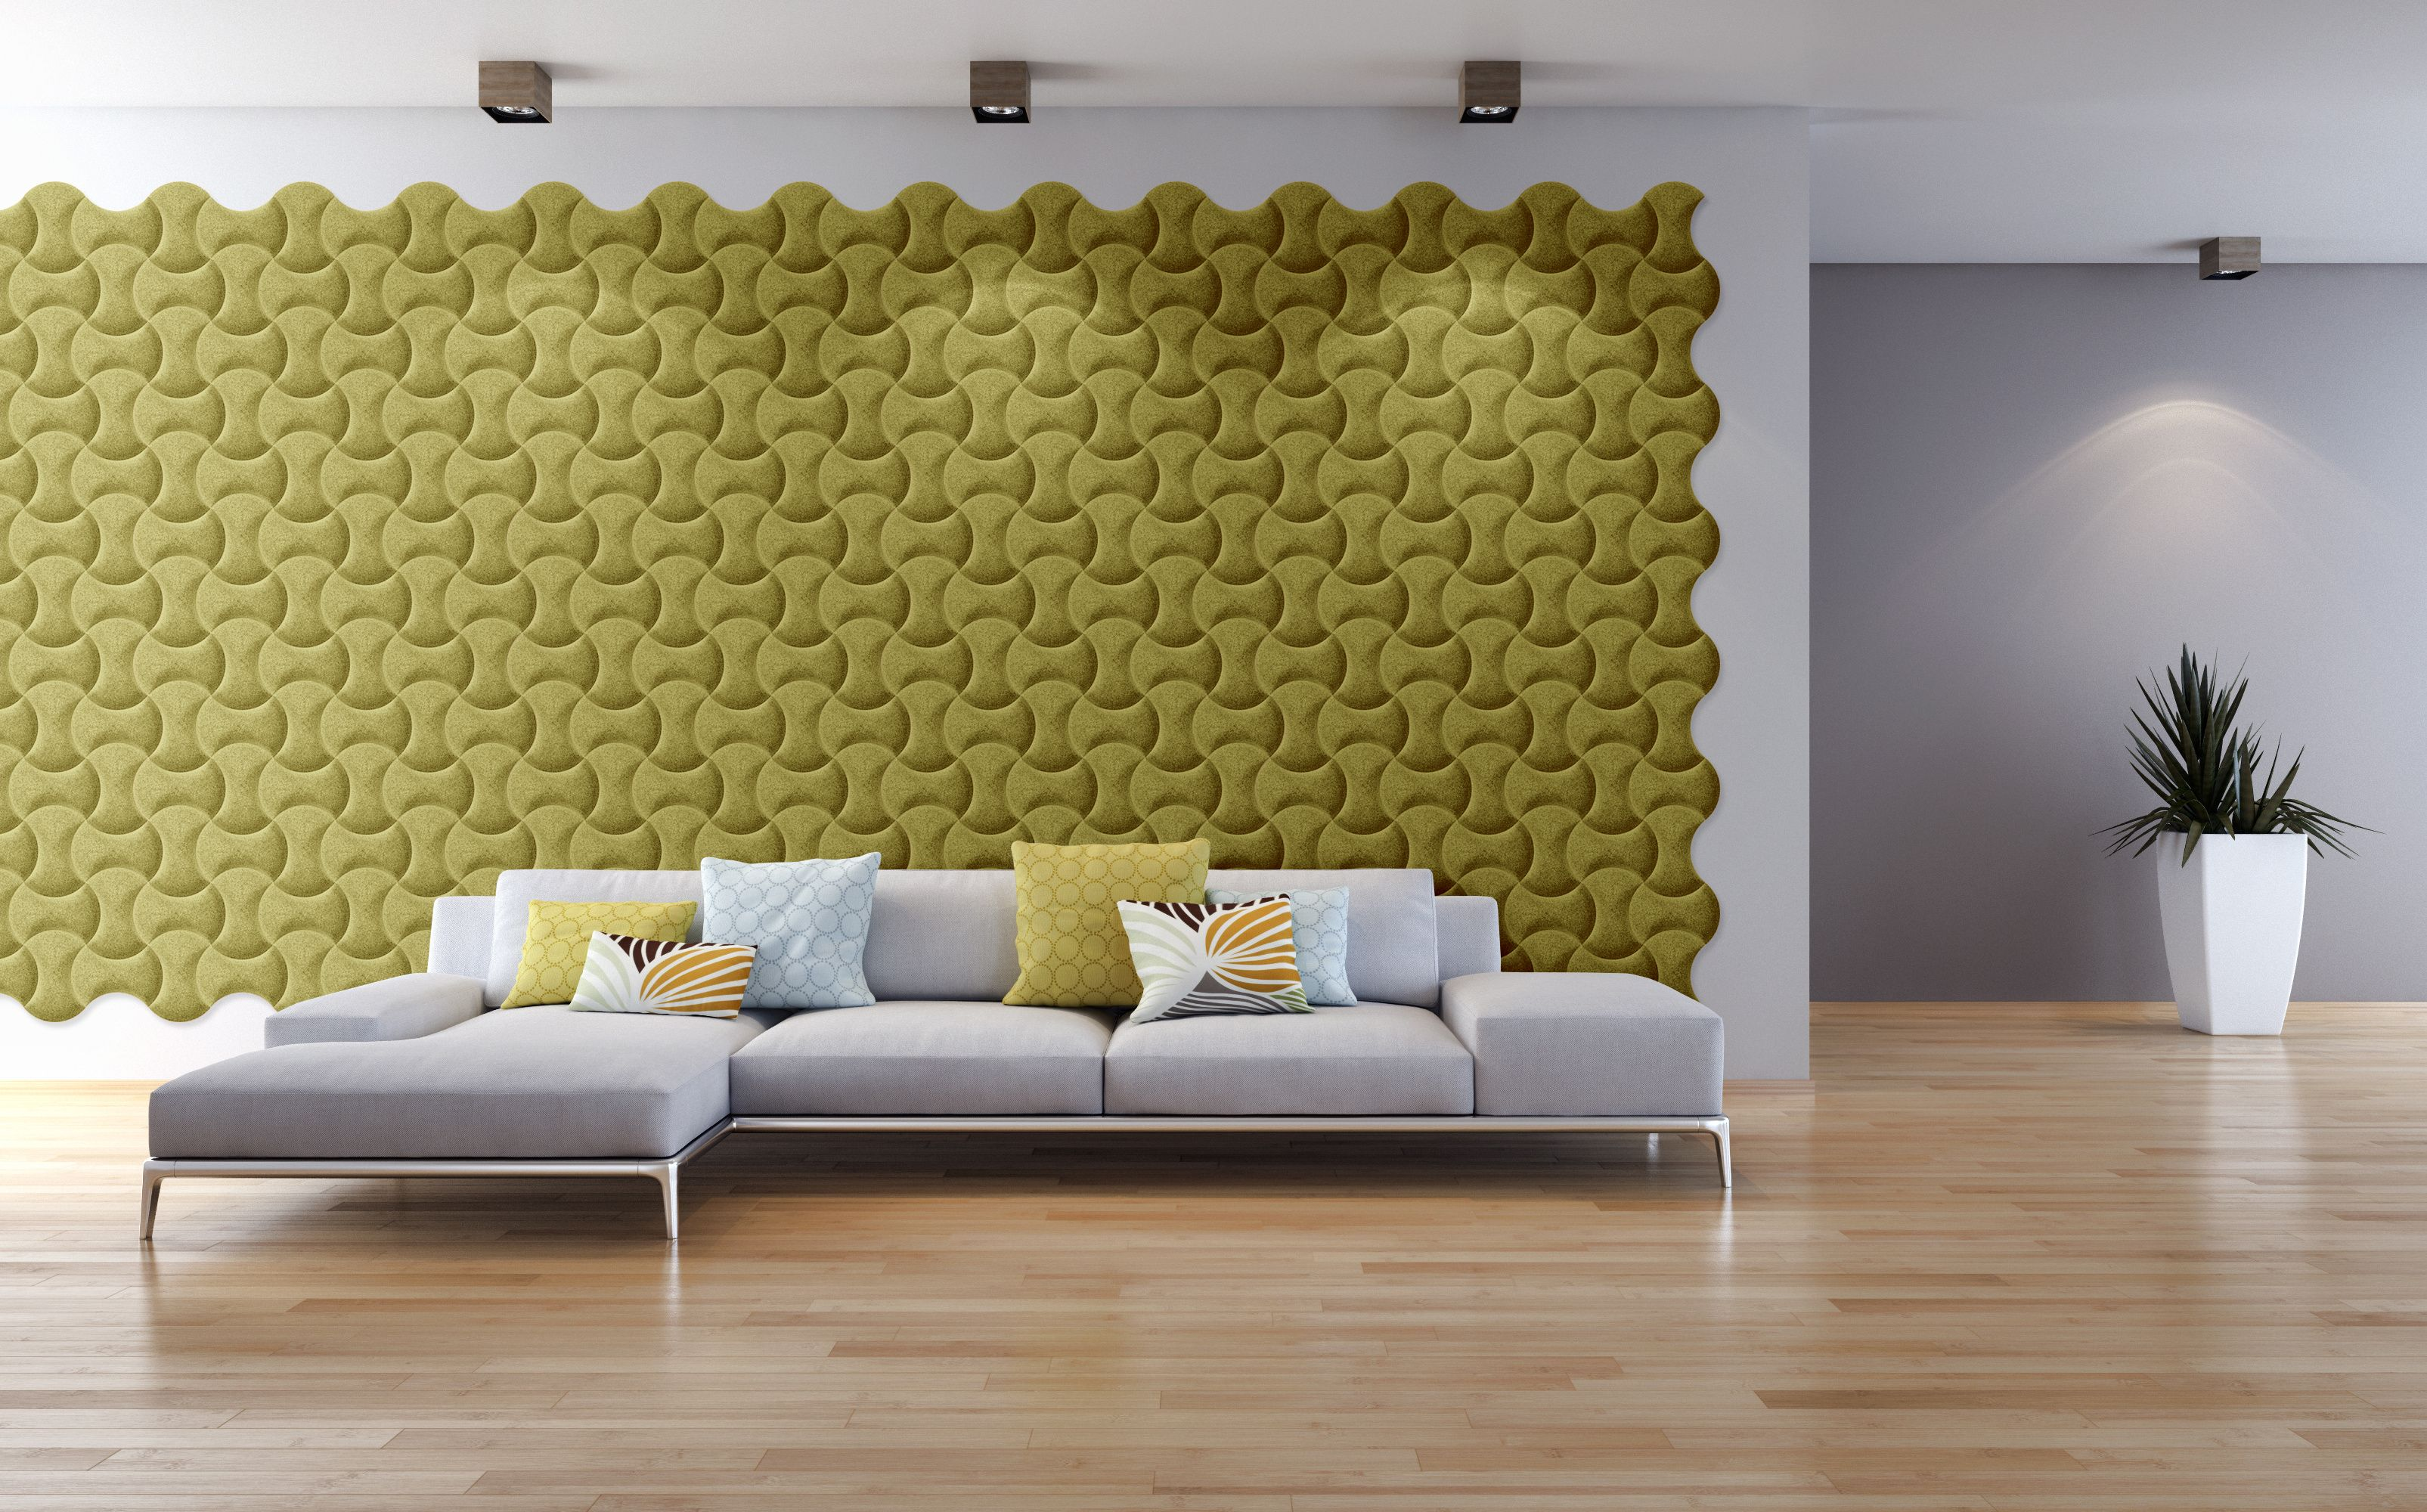 C_03 Senses | Muratto - Cork wall Coverings | wall decor | Pinterest ...